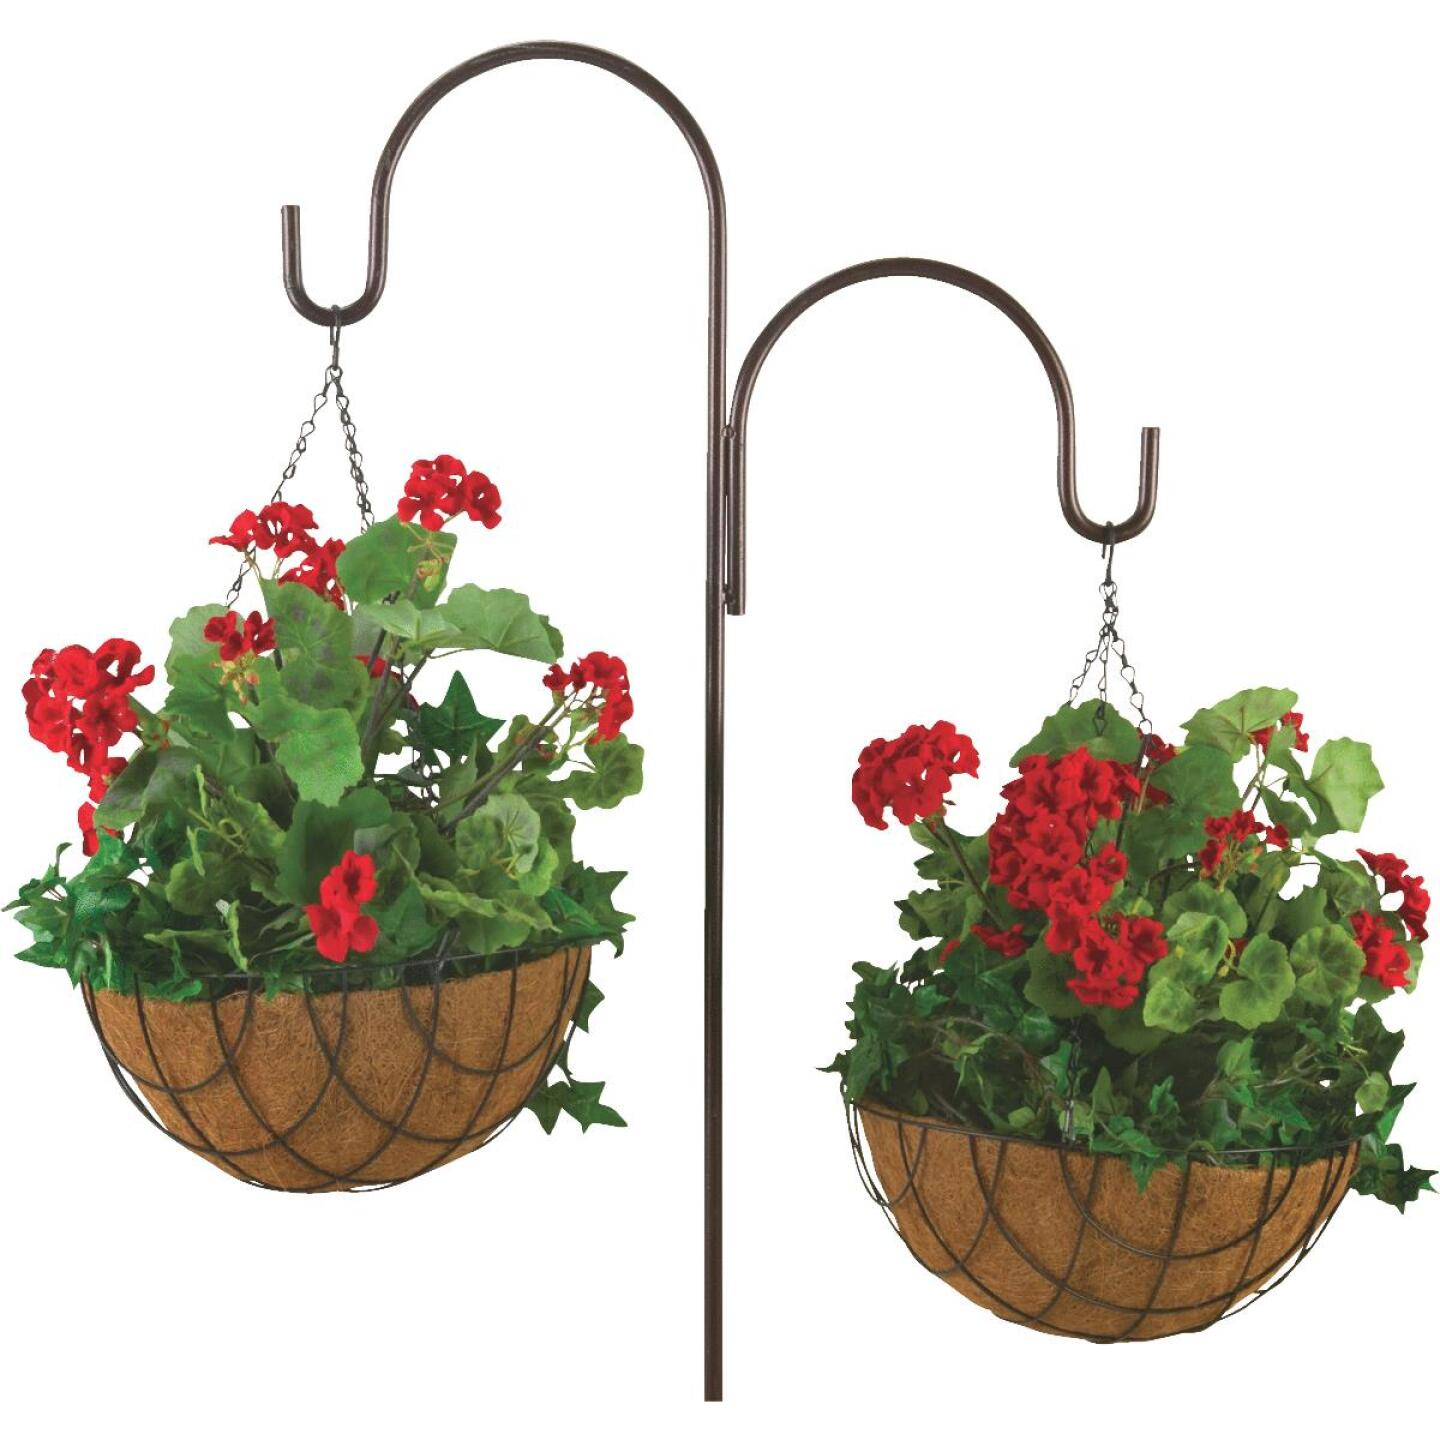 Best Garden 14 In. Steel Rod Black Powder Coat Hanging Plant Basket Image 2